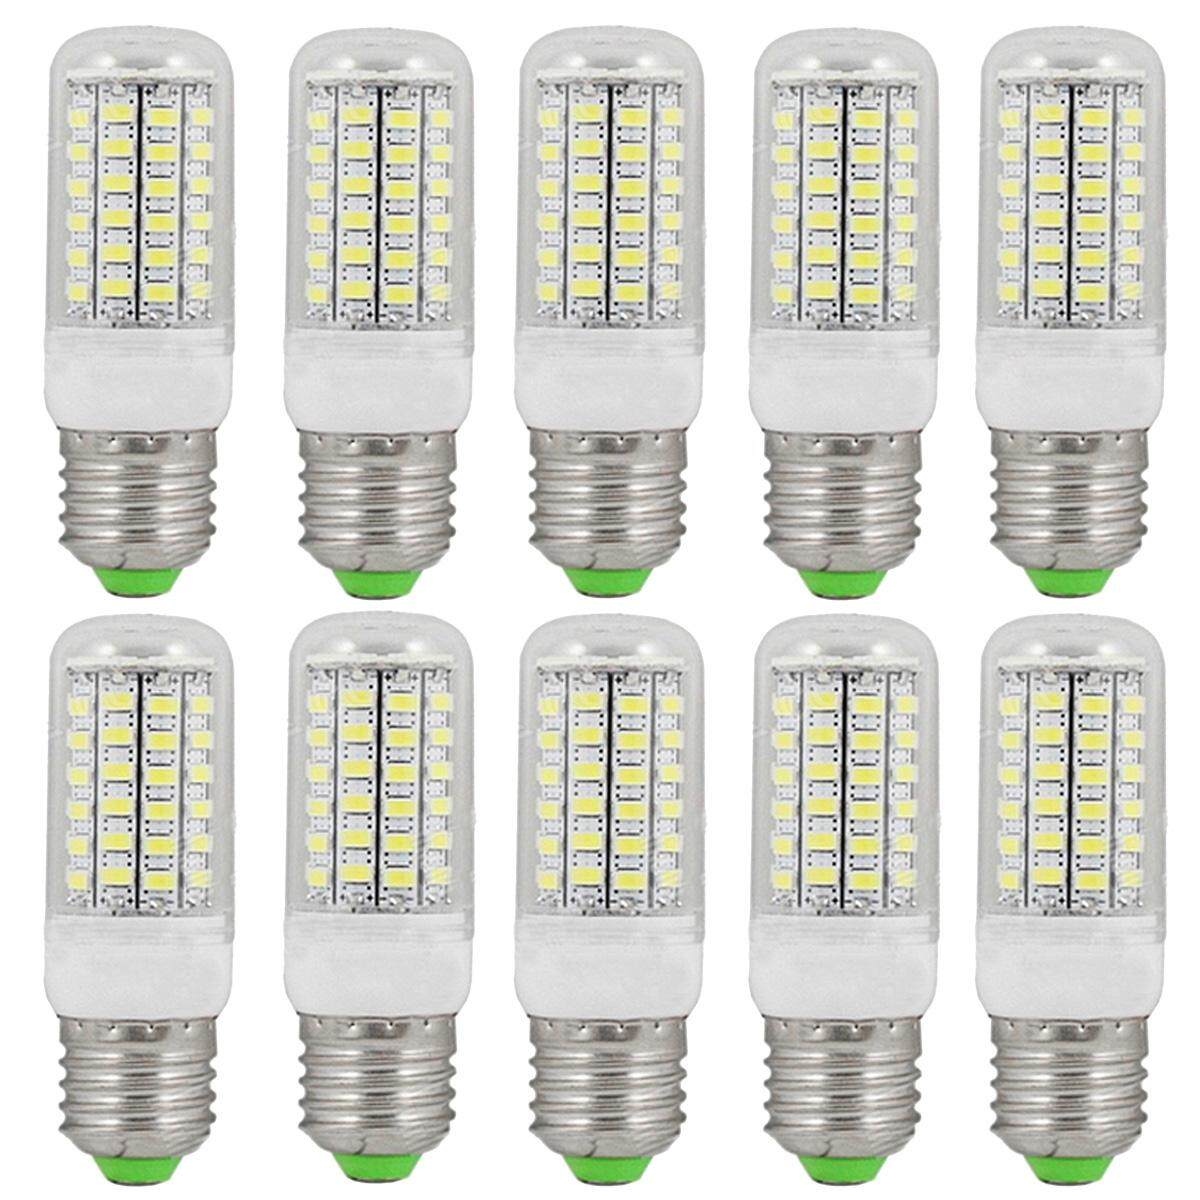 E27 12W 1800lm 69-SMD 5730 Cold White LED Corn Bulbs (220~240V/10PCS) - intl